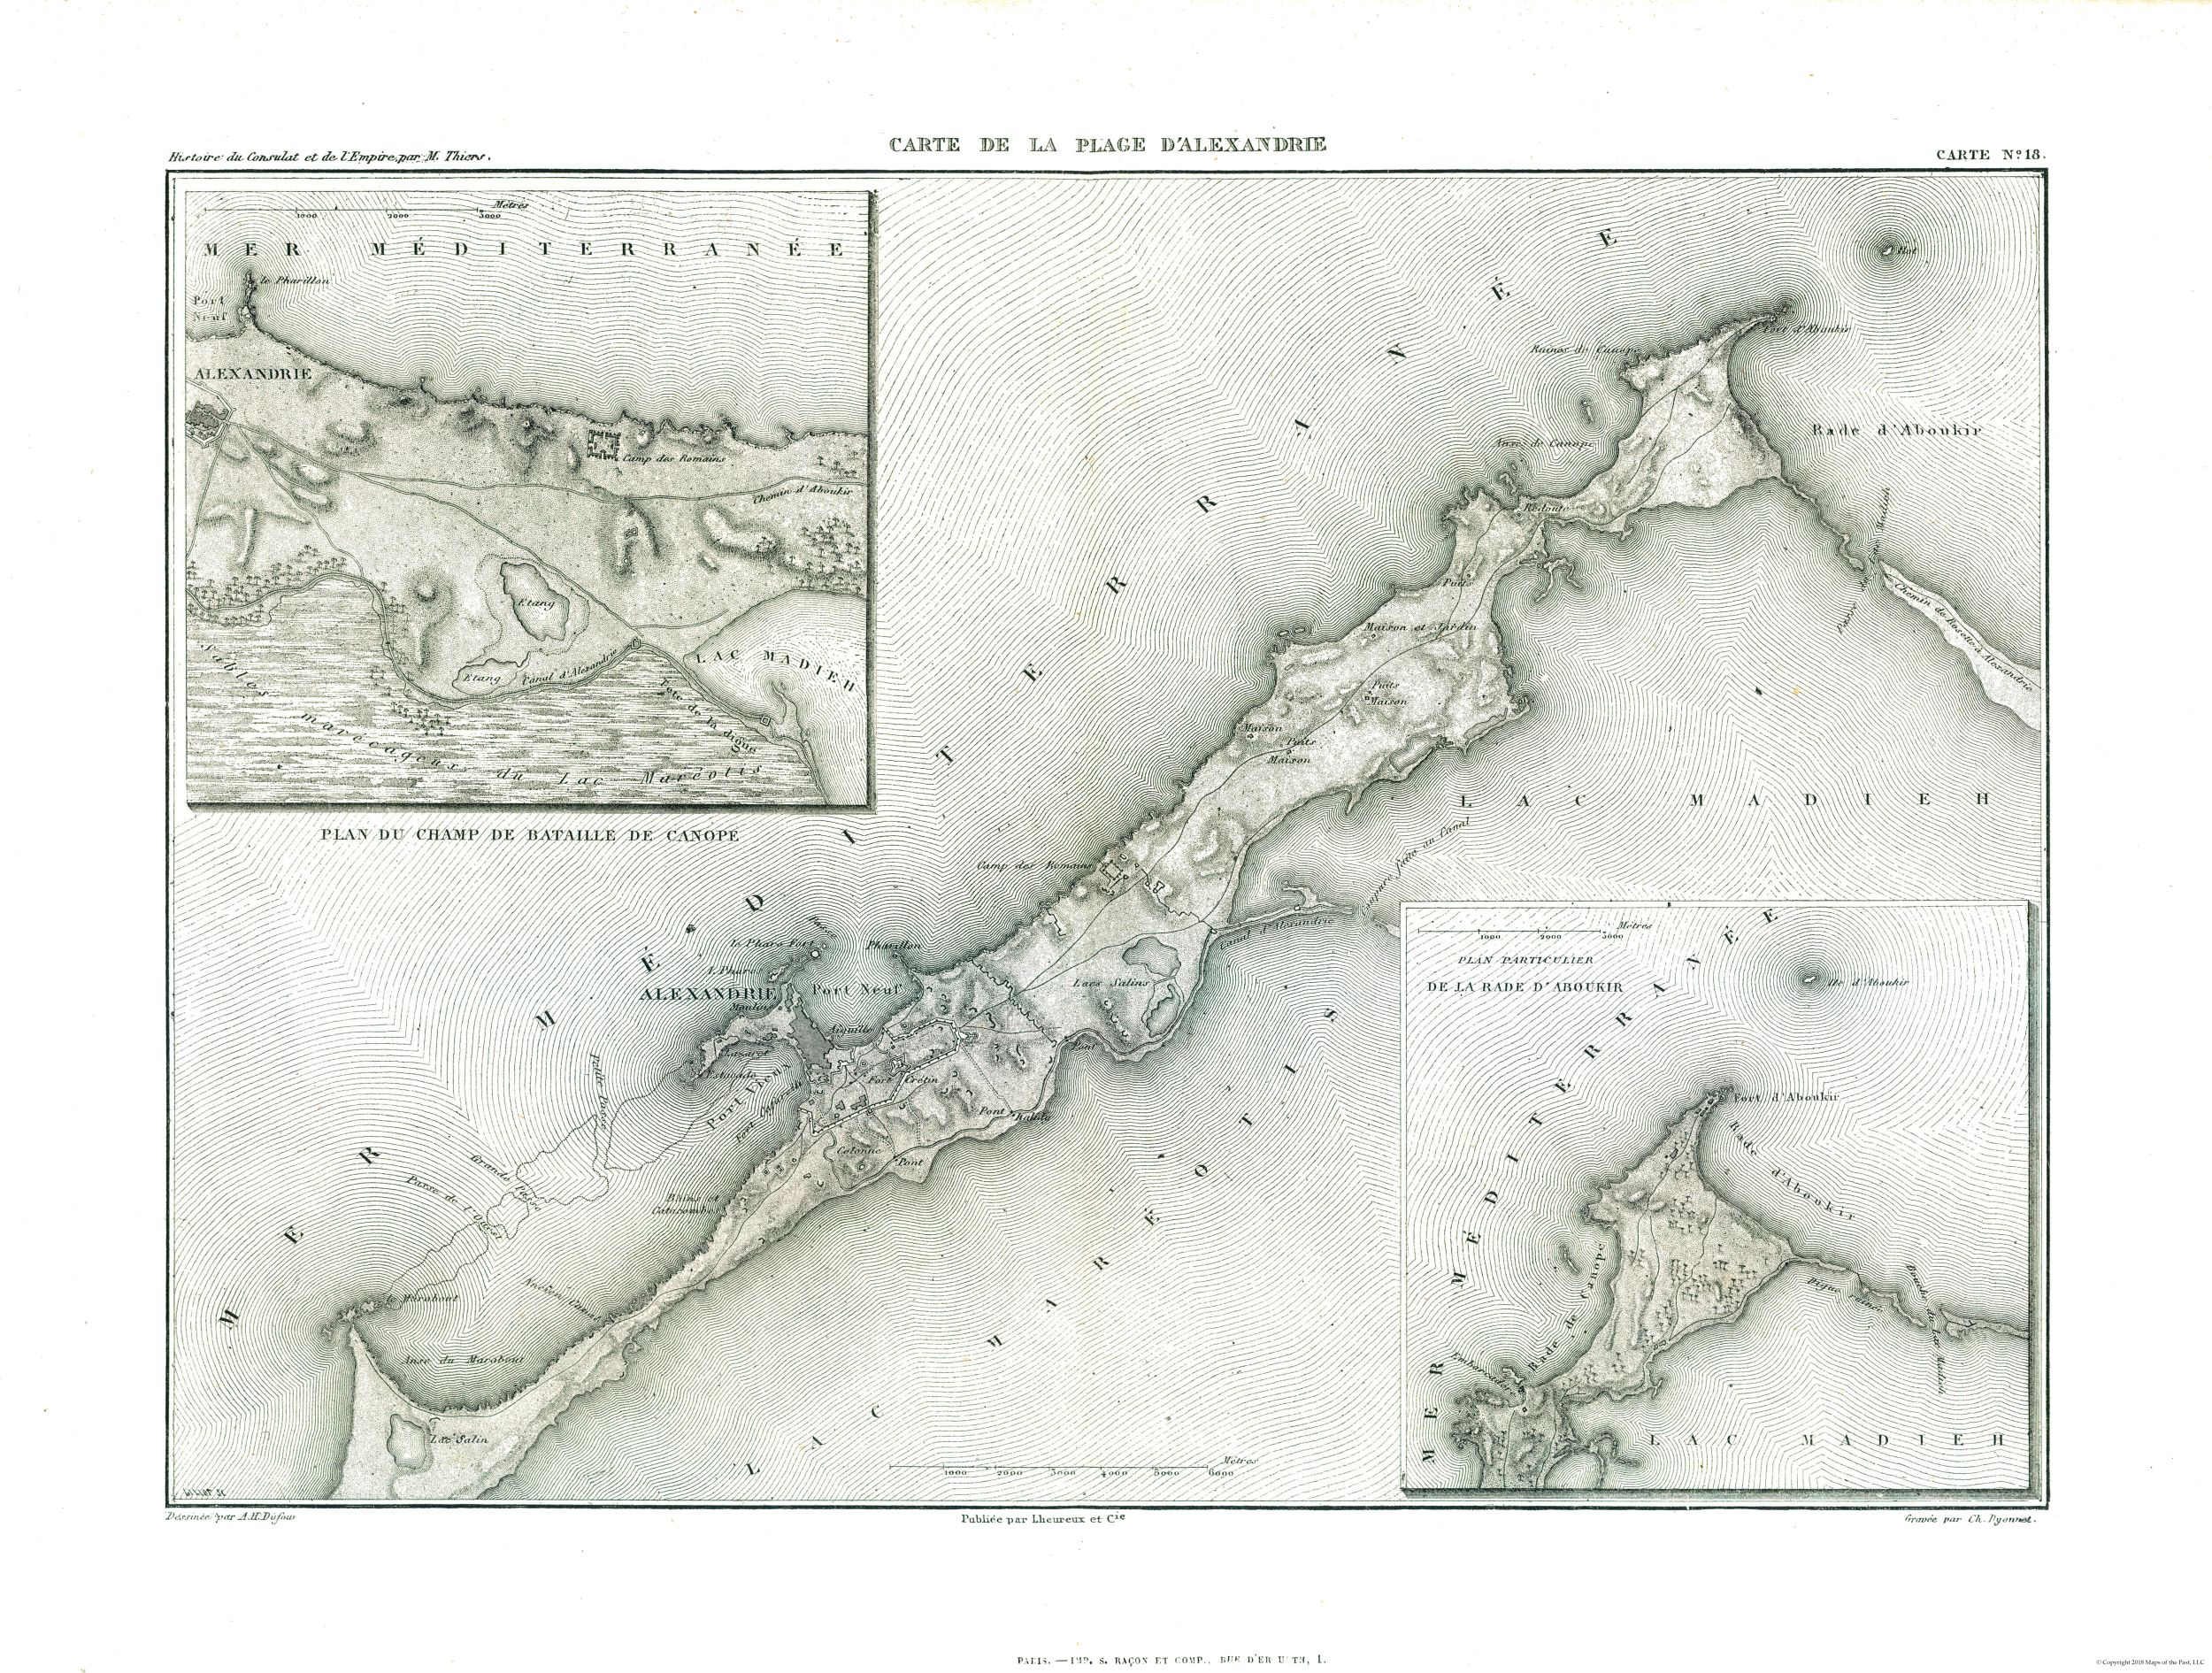 Other Wars | Alexandria - Egypt - Thiers 1866 - 30.40 x 23